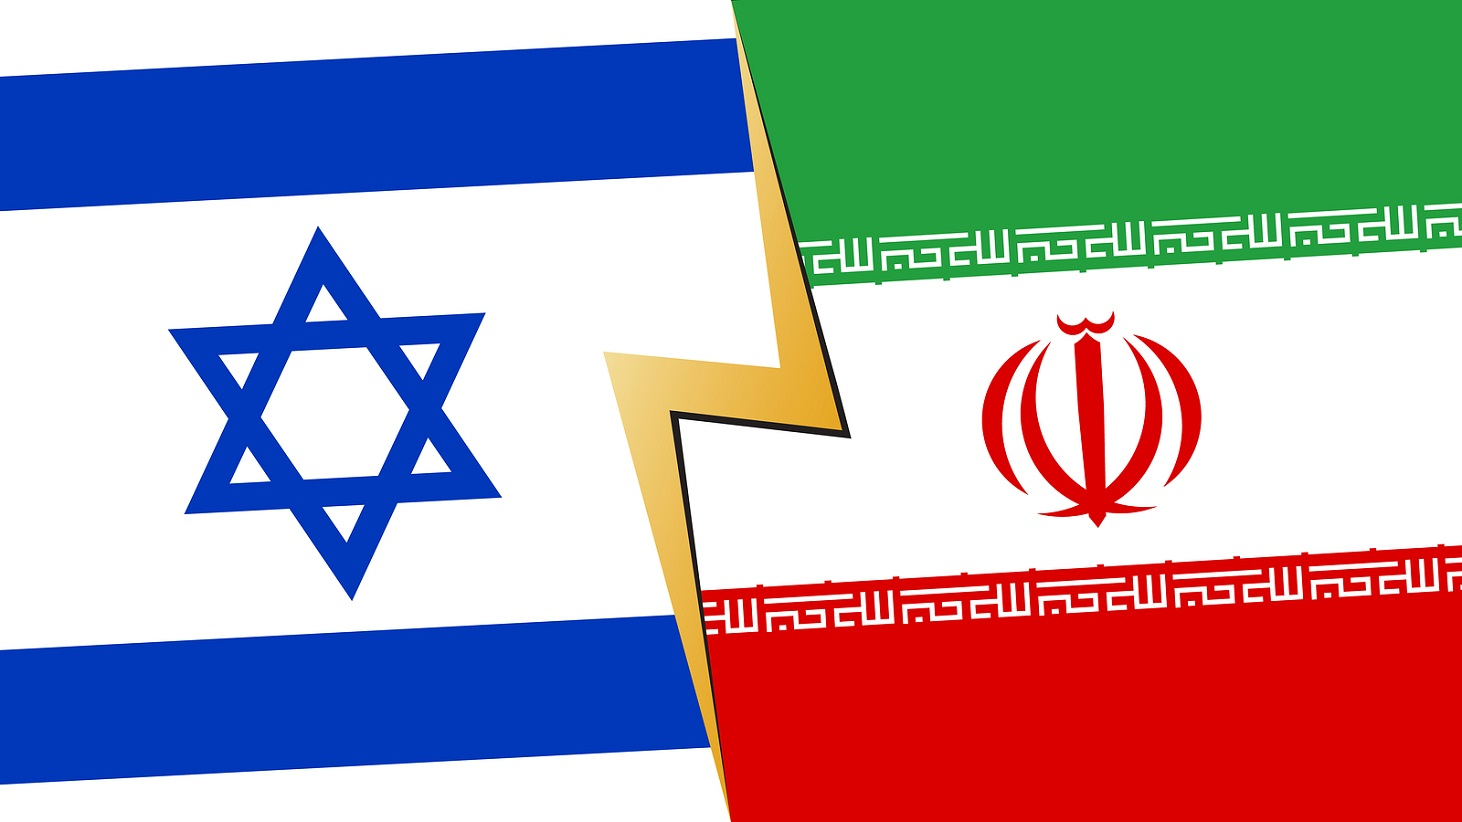 Israel Iran financial, diplomatic crisis concept. vector illustration.